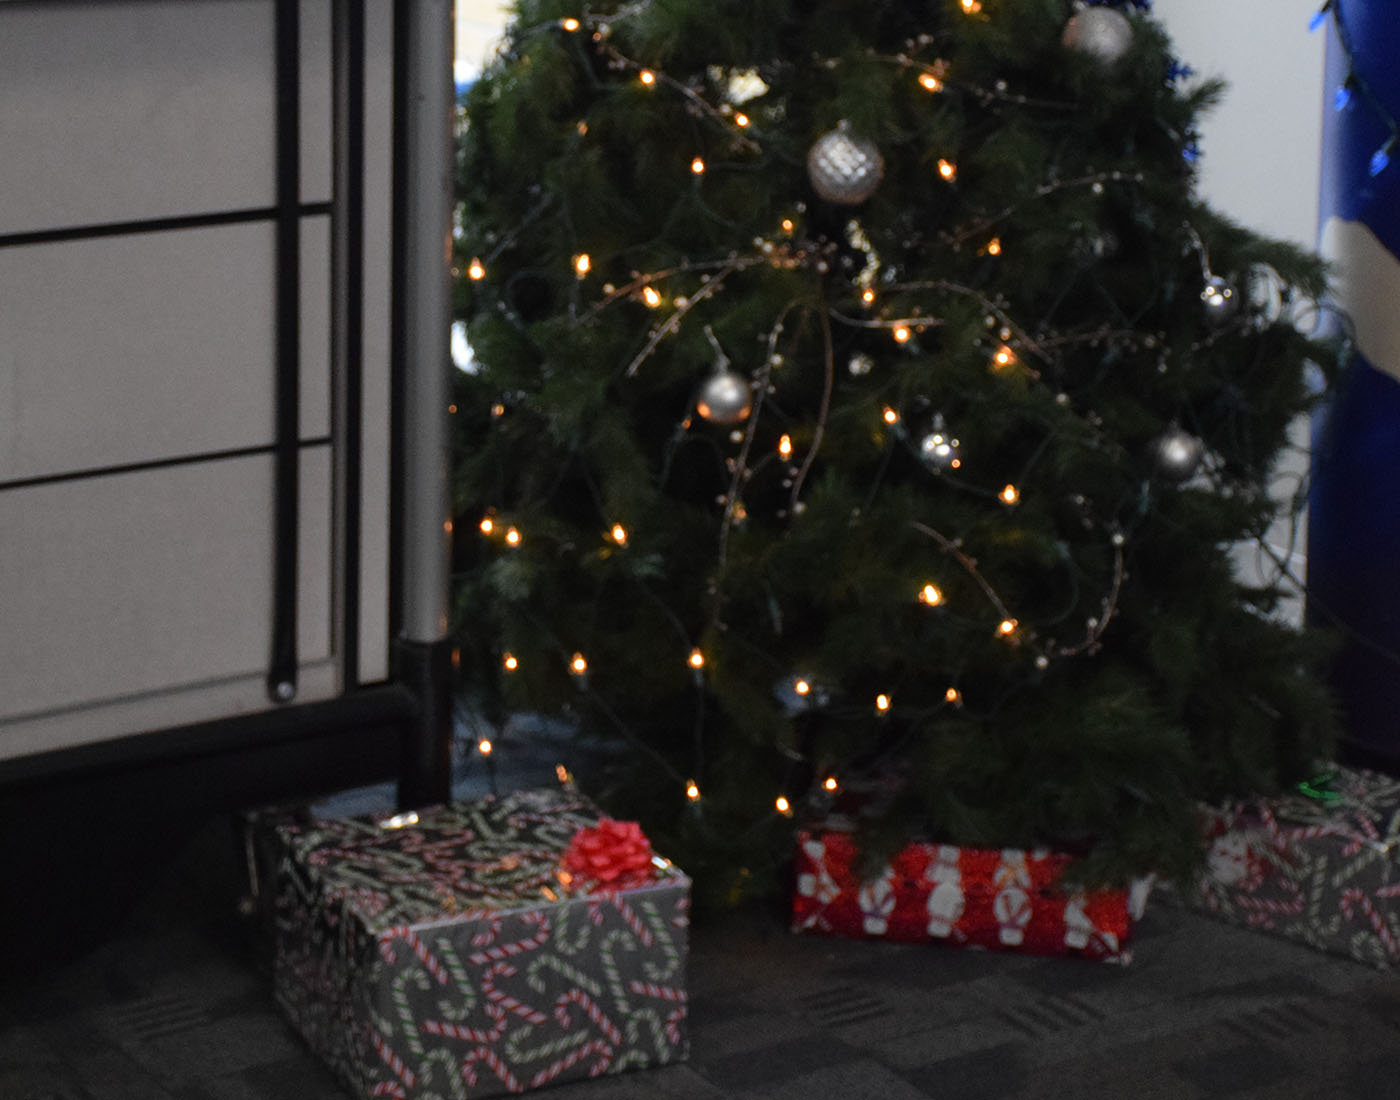 OHS commons Christmas tree